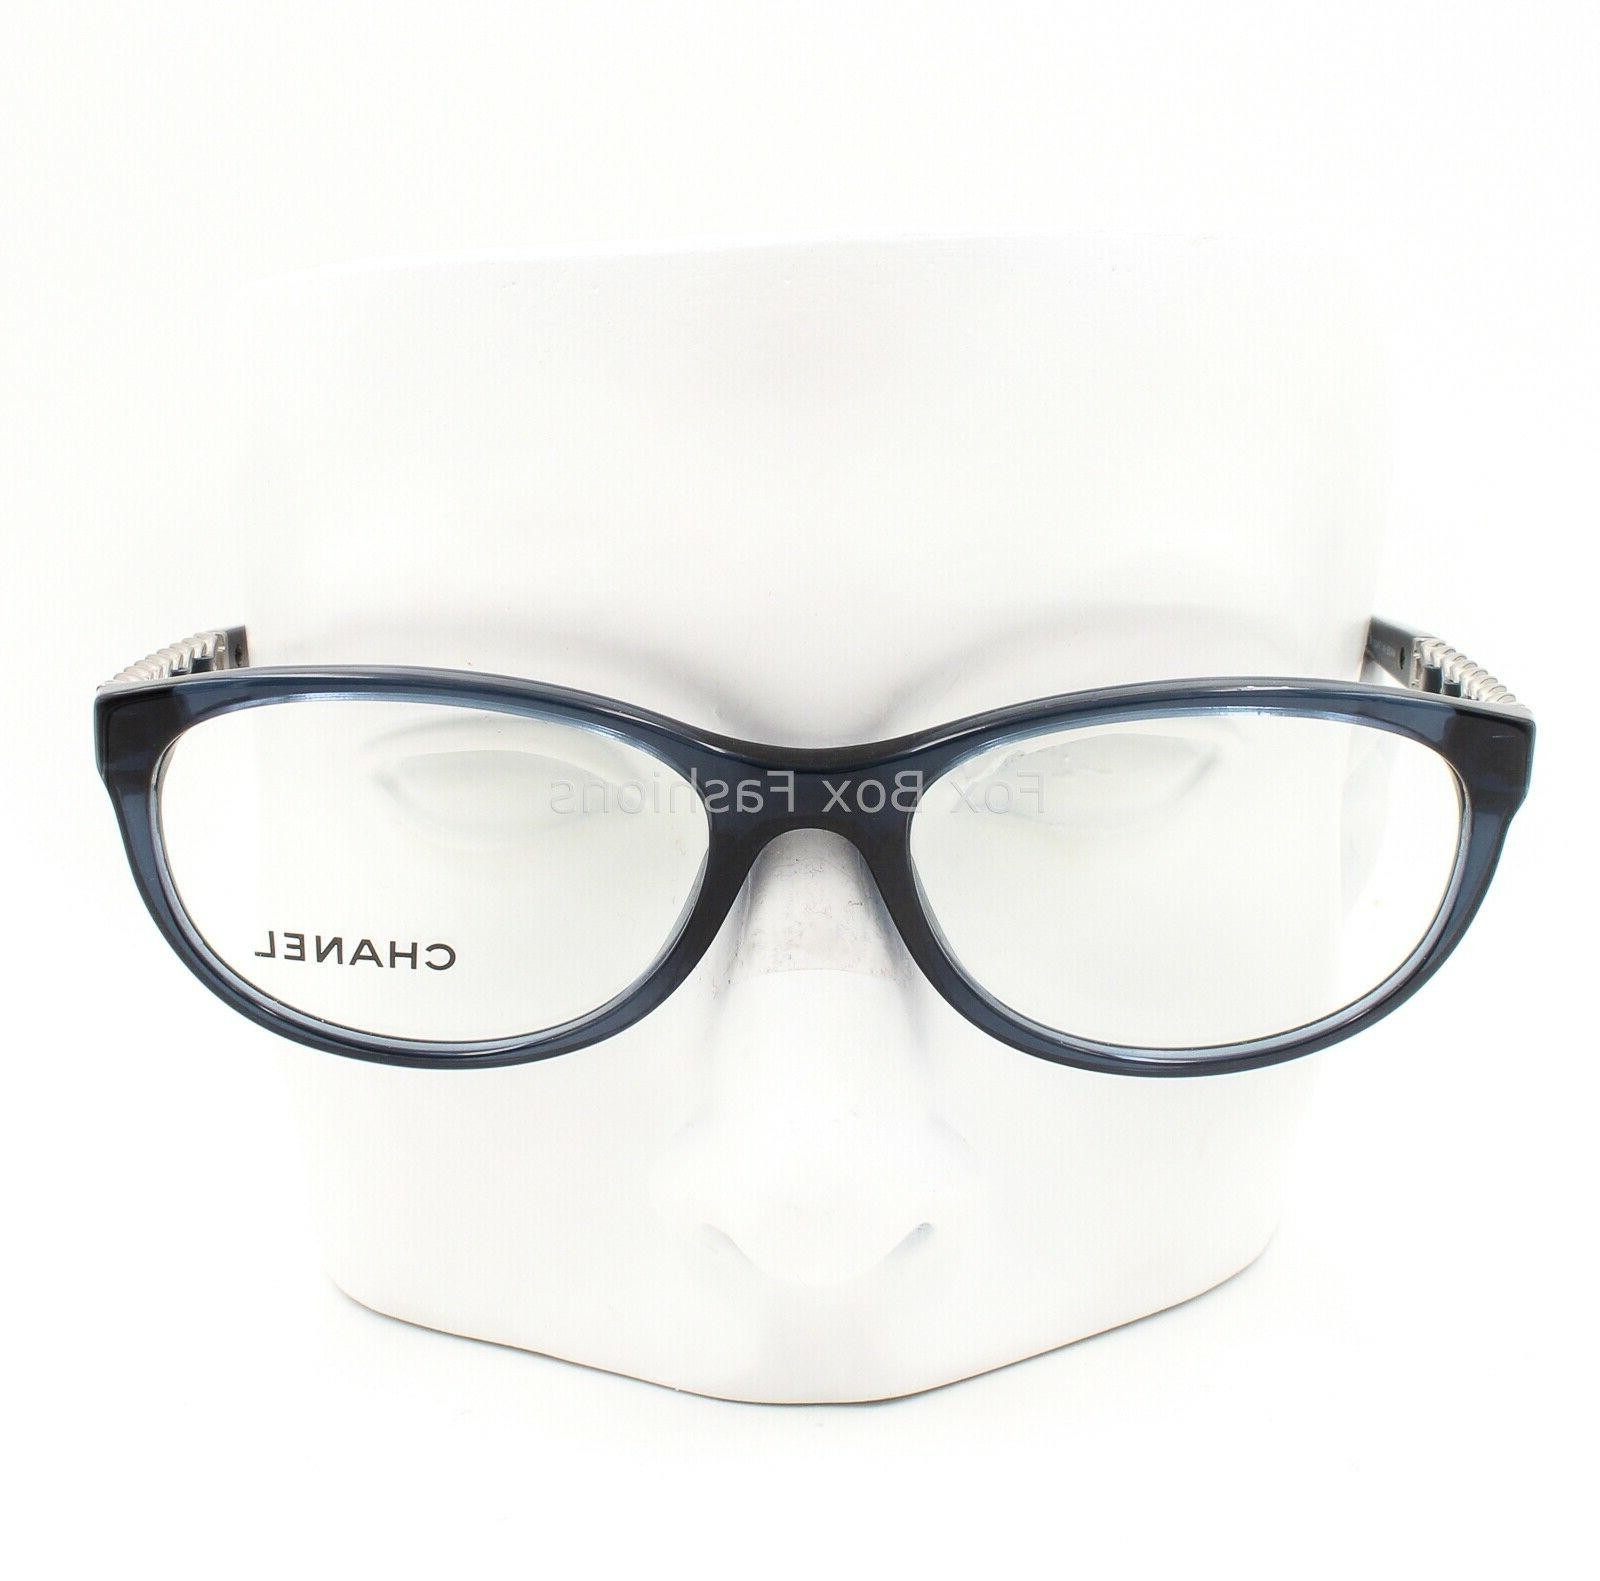 CHANEL 1390 Eyeglasses Frame Glasses Crystal Blue & Logo